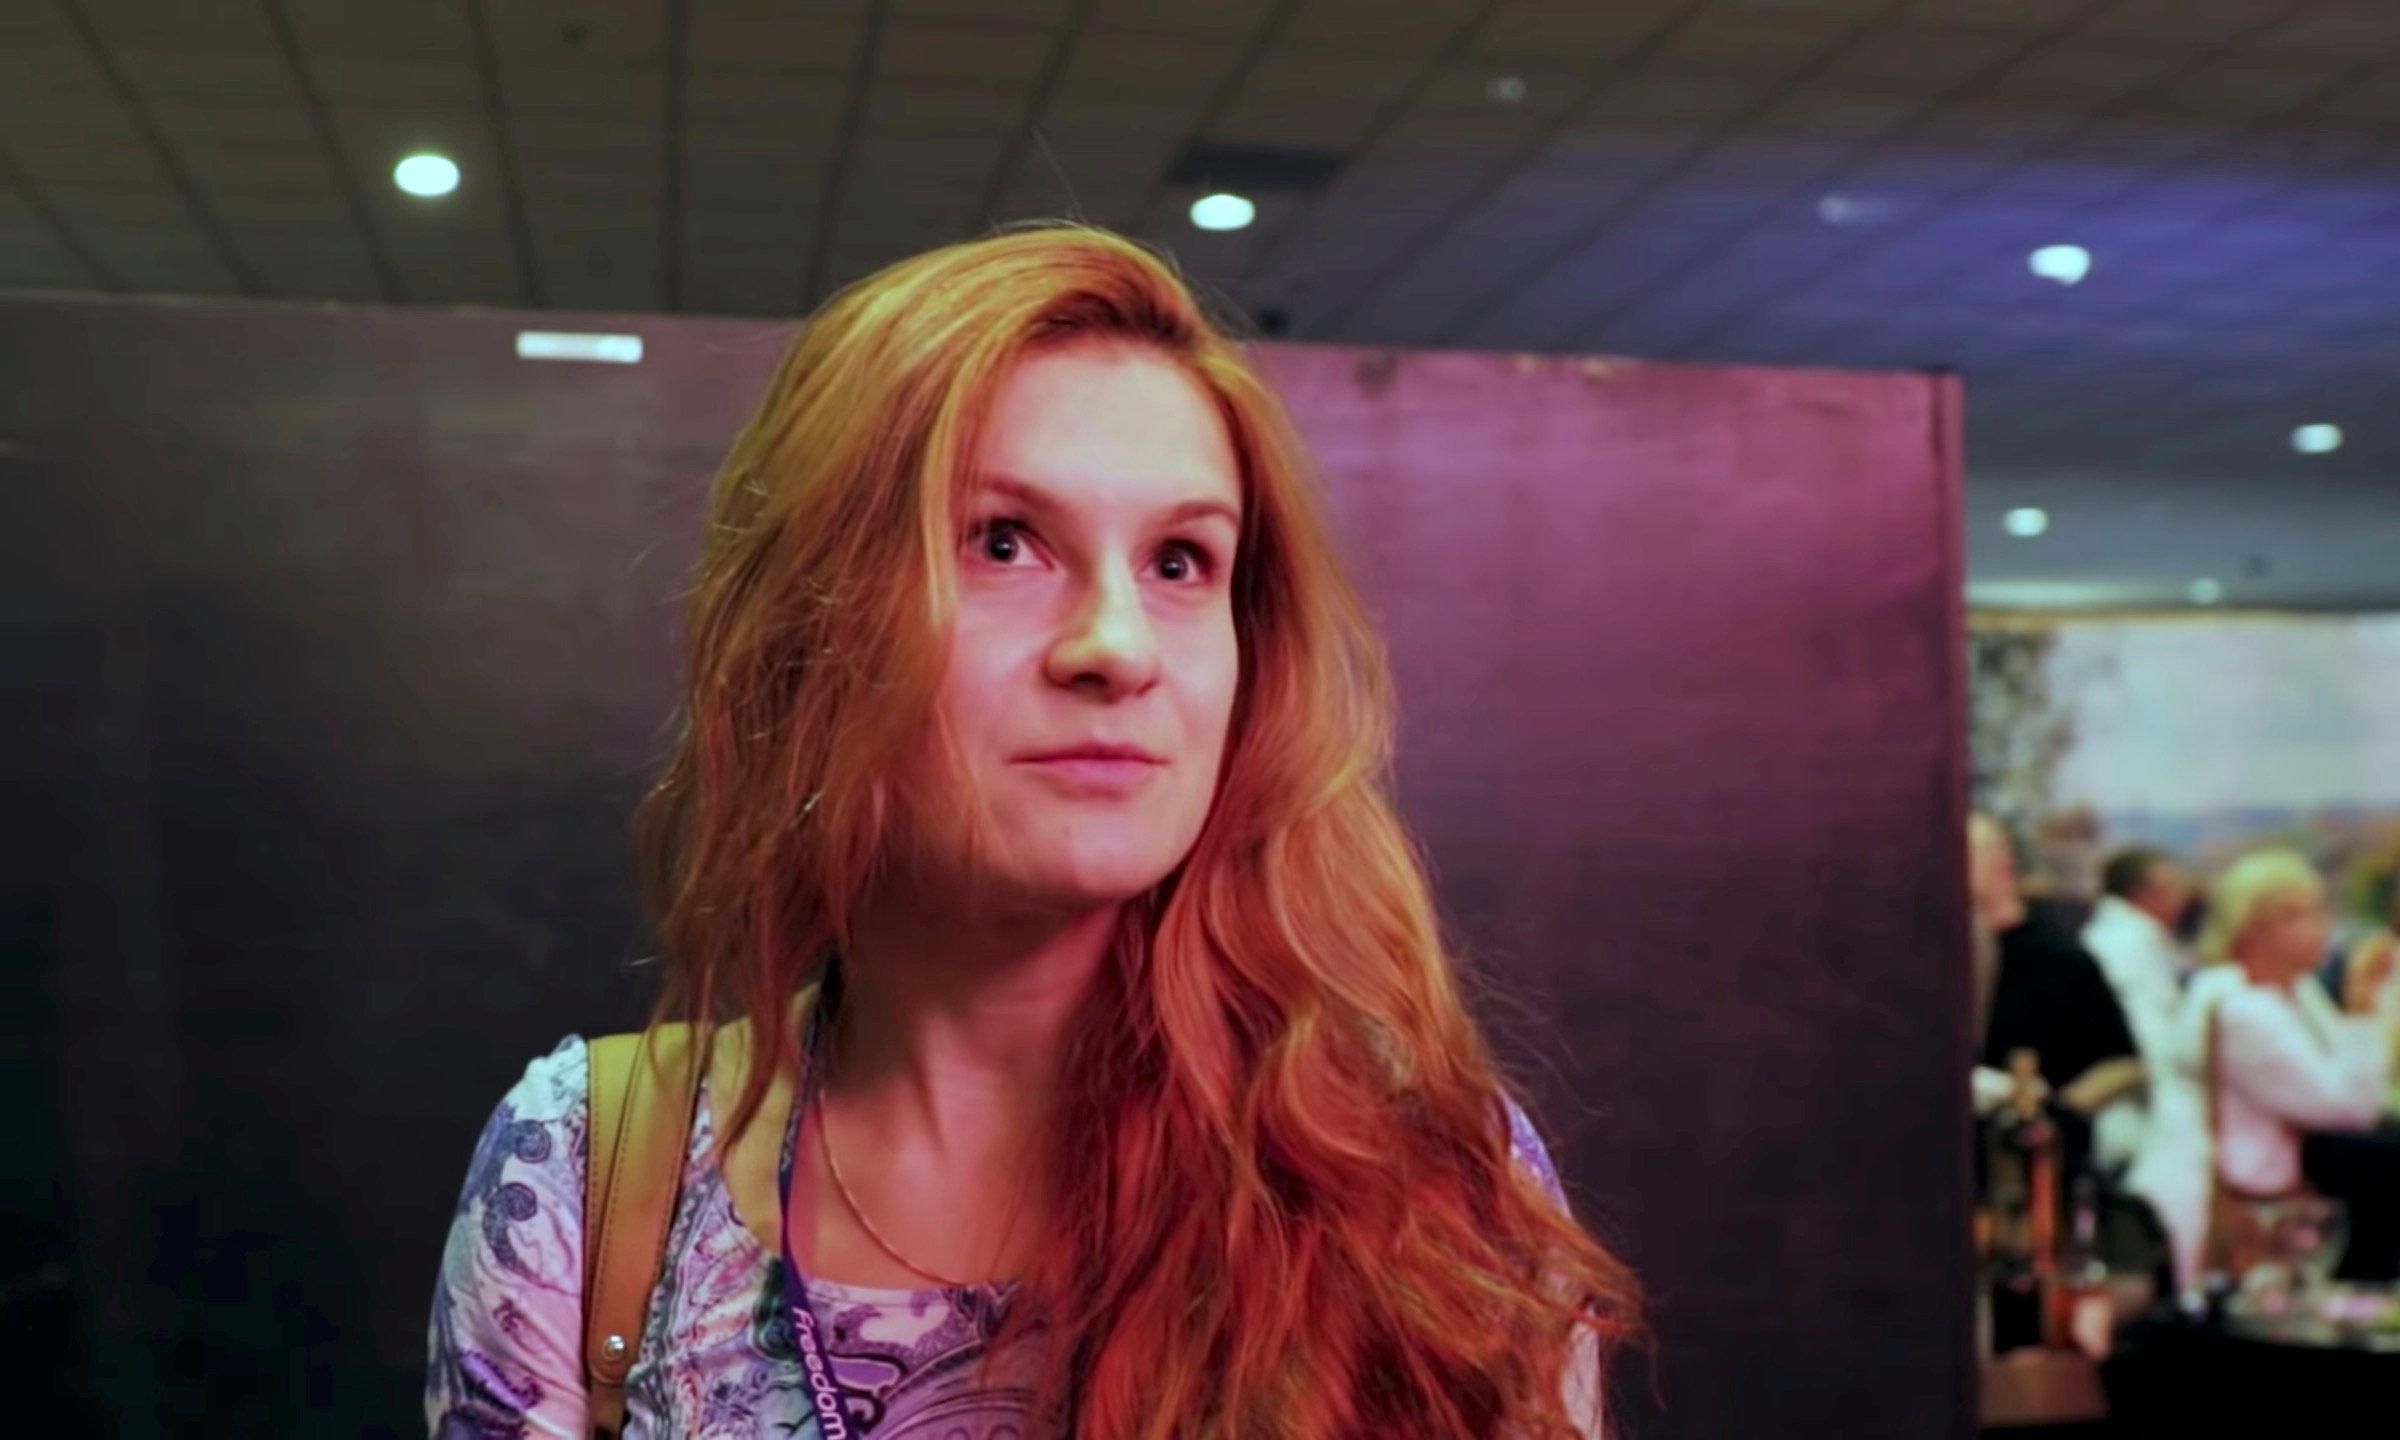 Russian spy Maria Butina pleads guilty to conspiracy against US